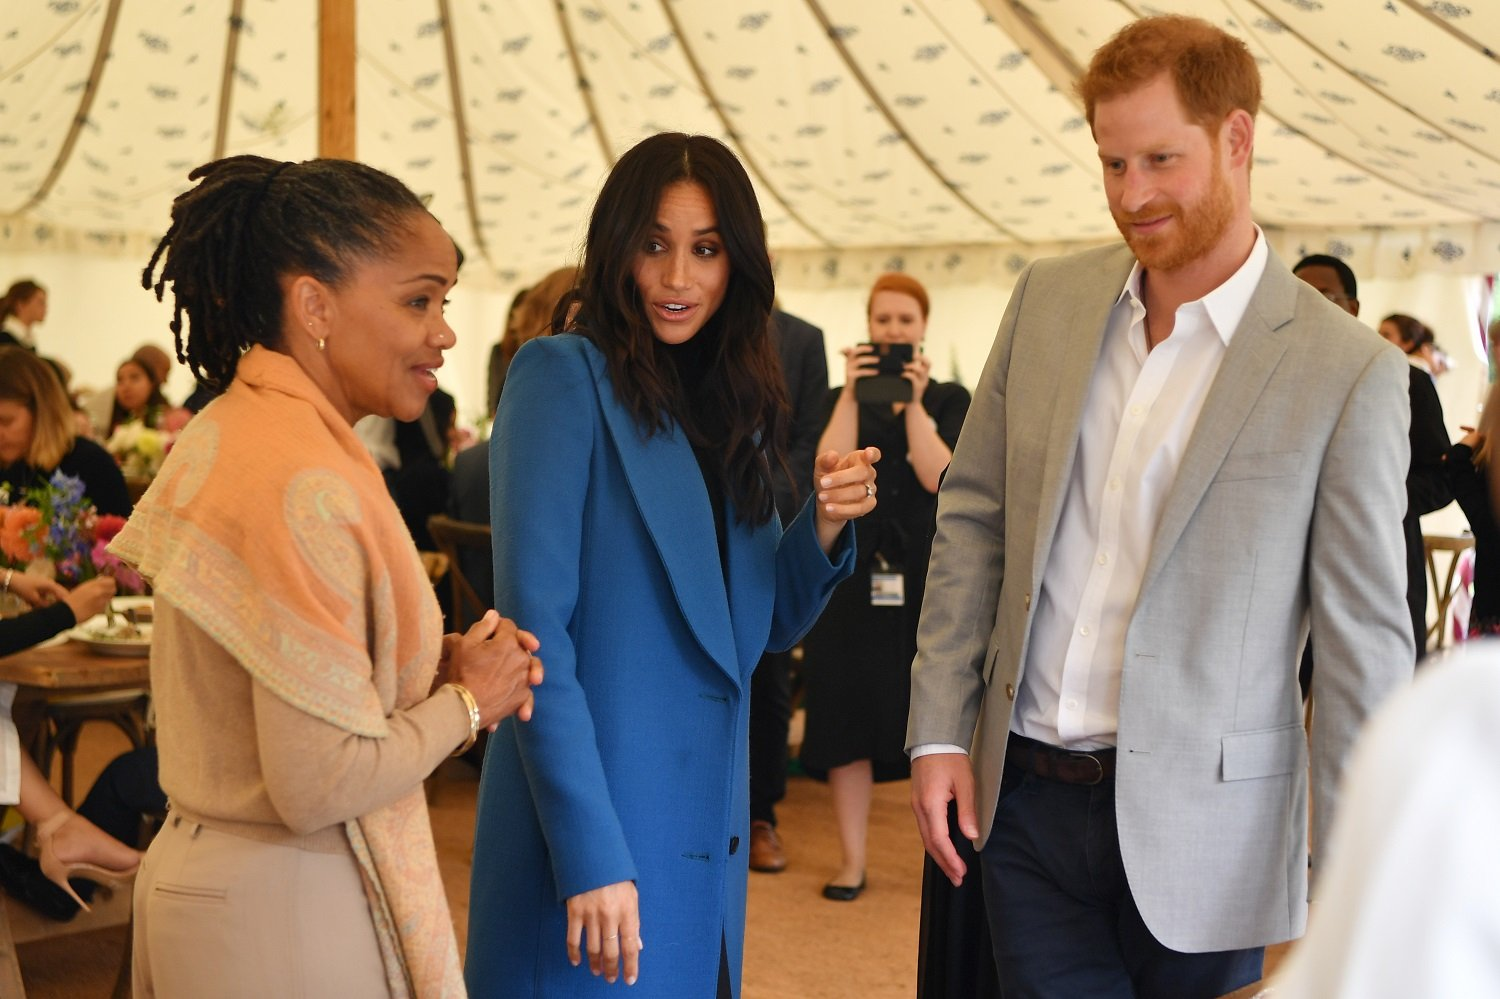 Meghan, Duquesa de Sussex (C) llega con su madre Doria Ragland (I) y el Príncipe Enrique, Duque de Sussex en el evento 'Together' Cookbook Launch en el Palacio de Kensington el 20 de septiembre de 2018 en Londres, Inglaterra. | Imagen: Getty Images/GlobalImagesUkraine